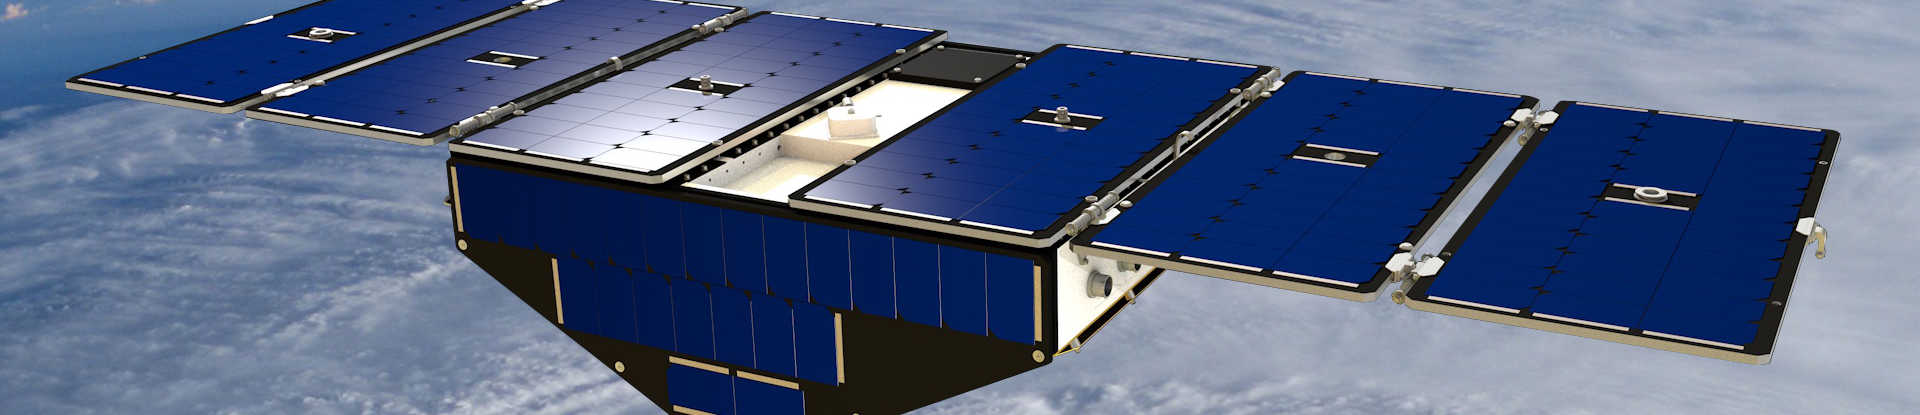 Artist concept of CYGNSS in orbit above planet earth